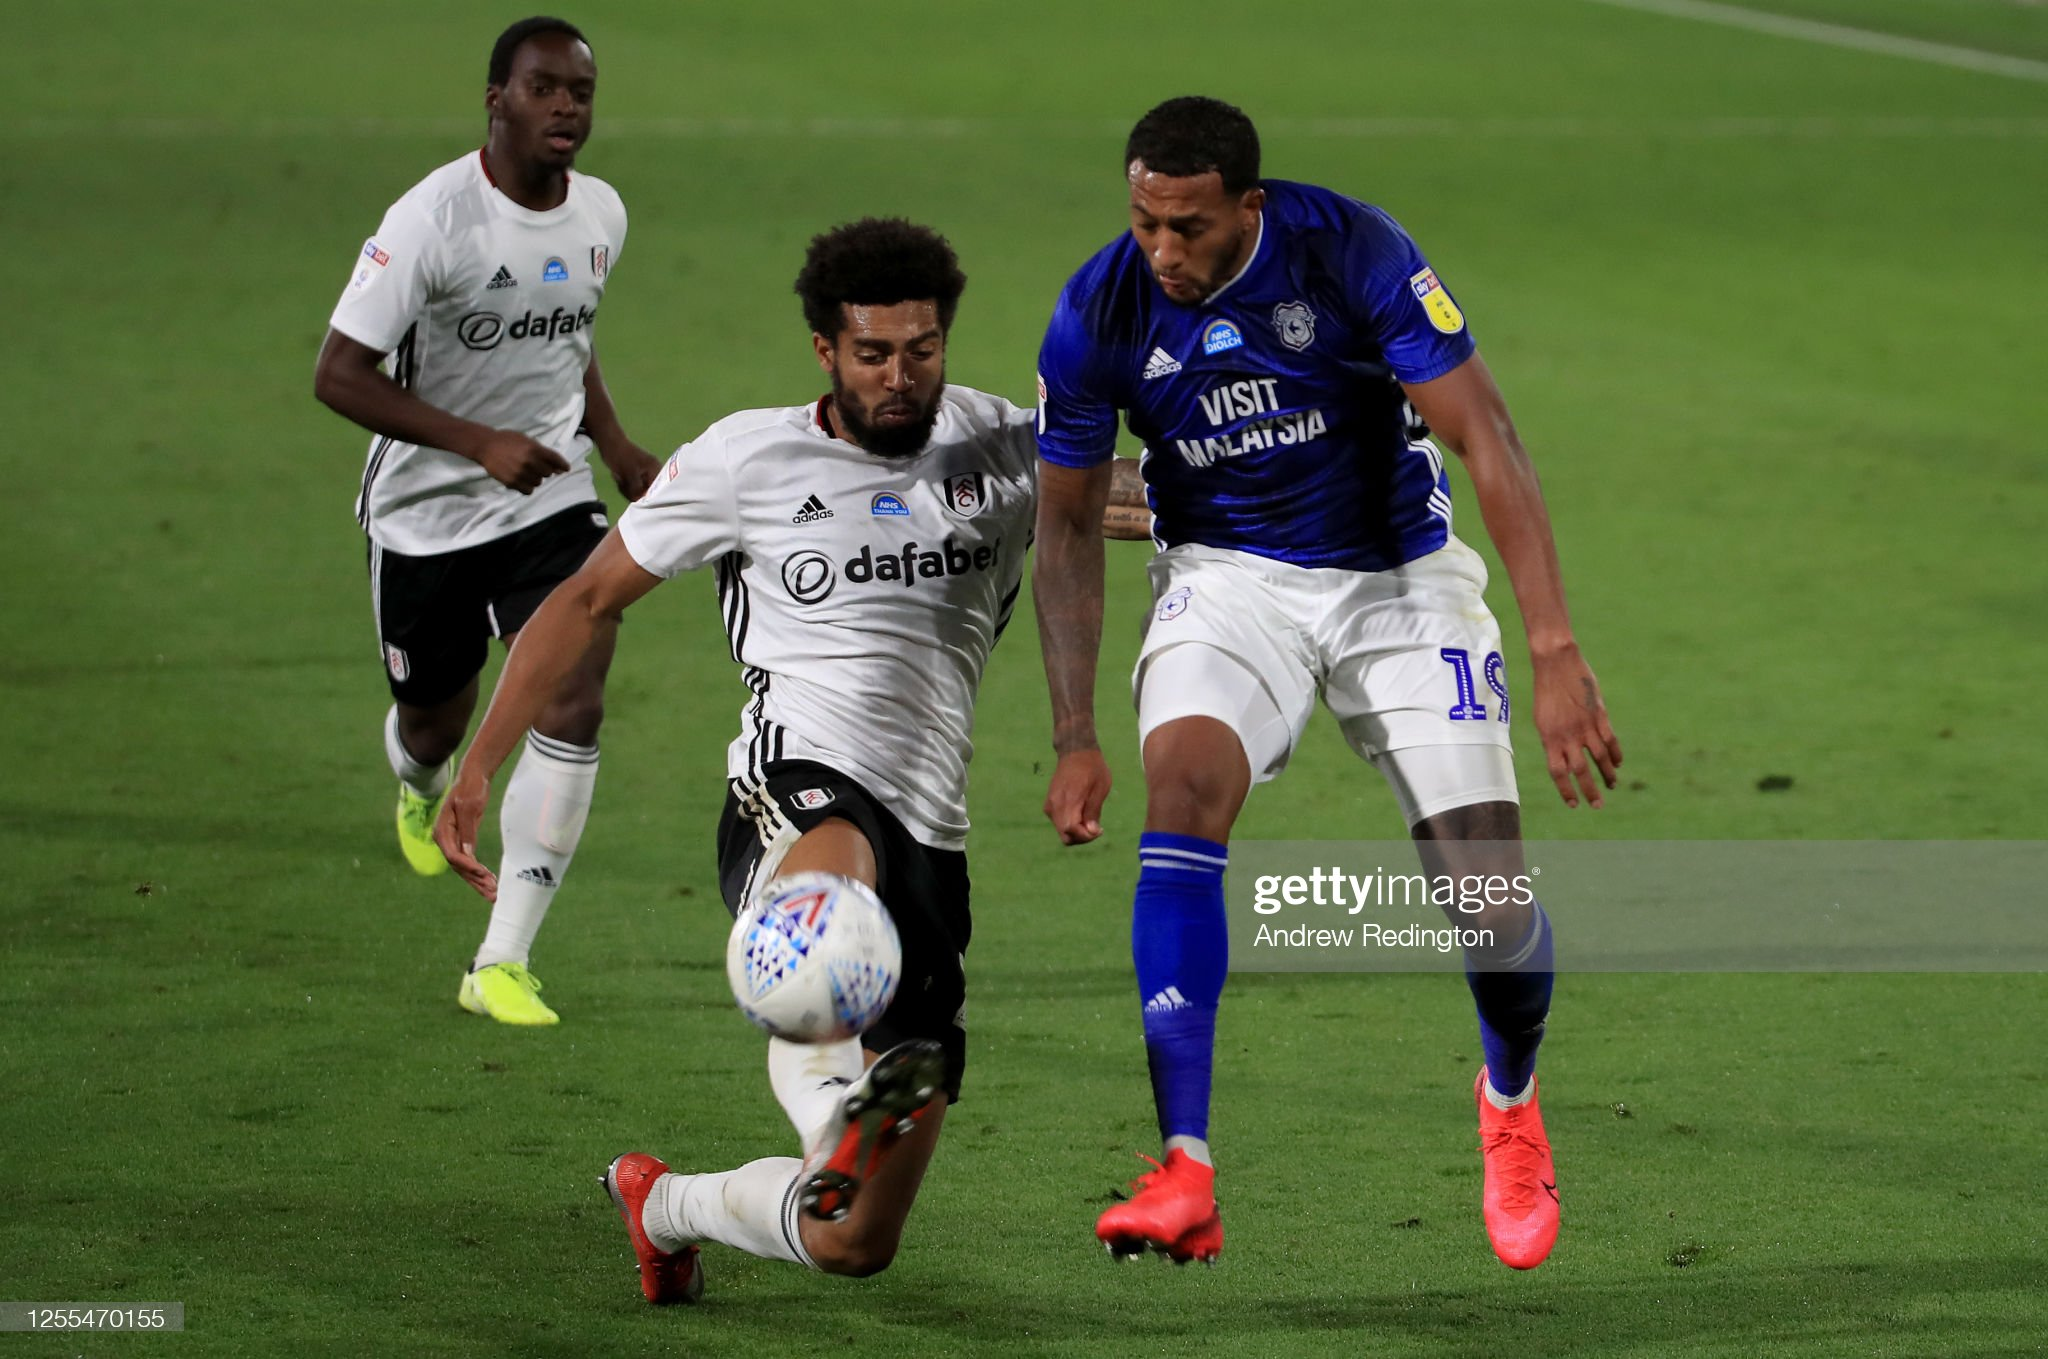 Fulham vs Cardiff City Preview, prediction and odds